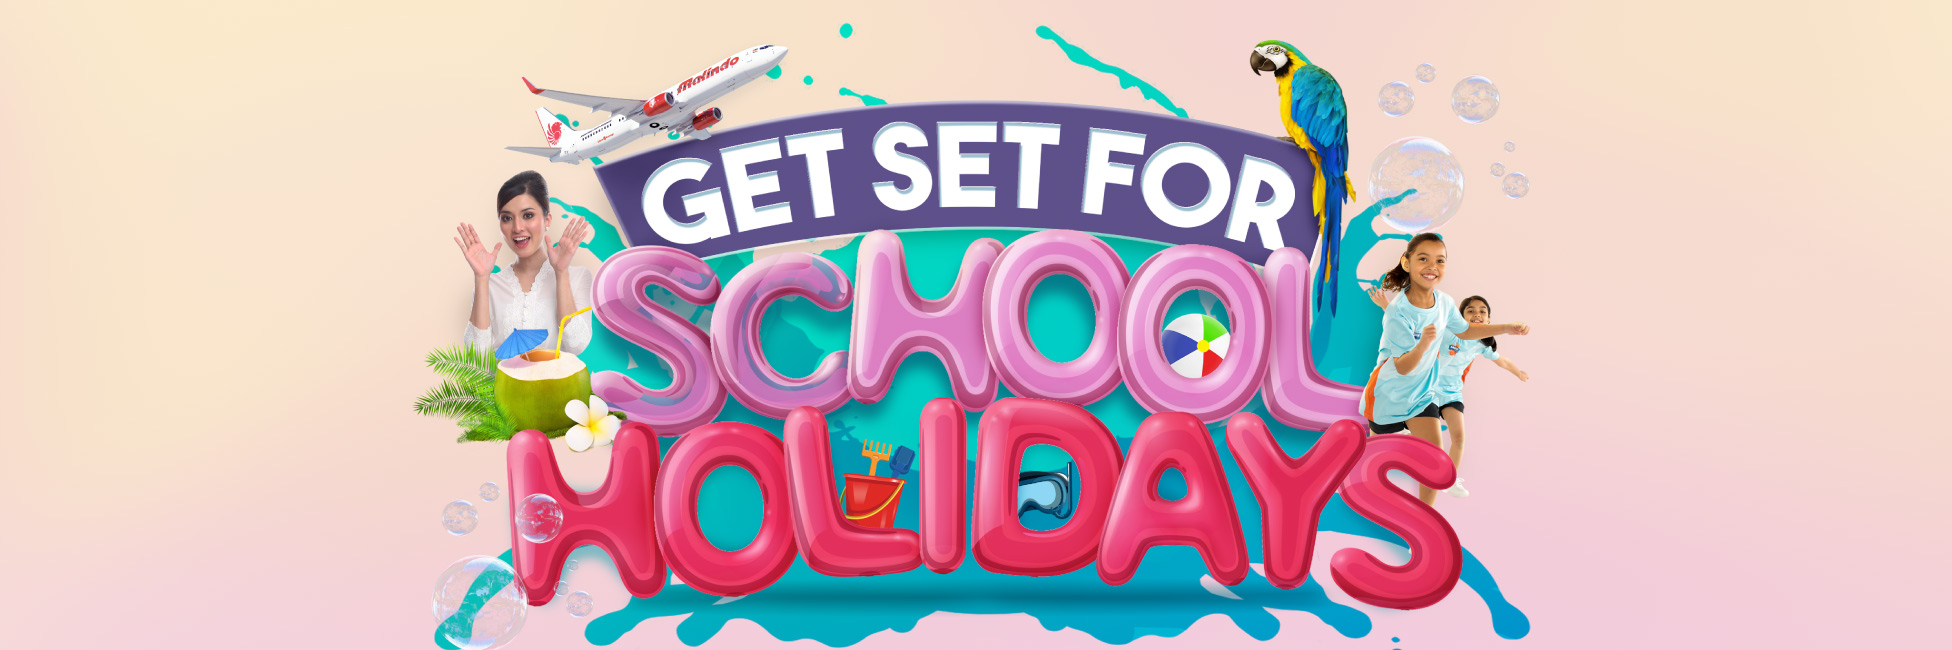 Malindo School Holidays - Domestic microsite school holidays 18 11 19